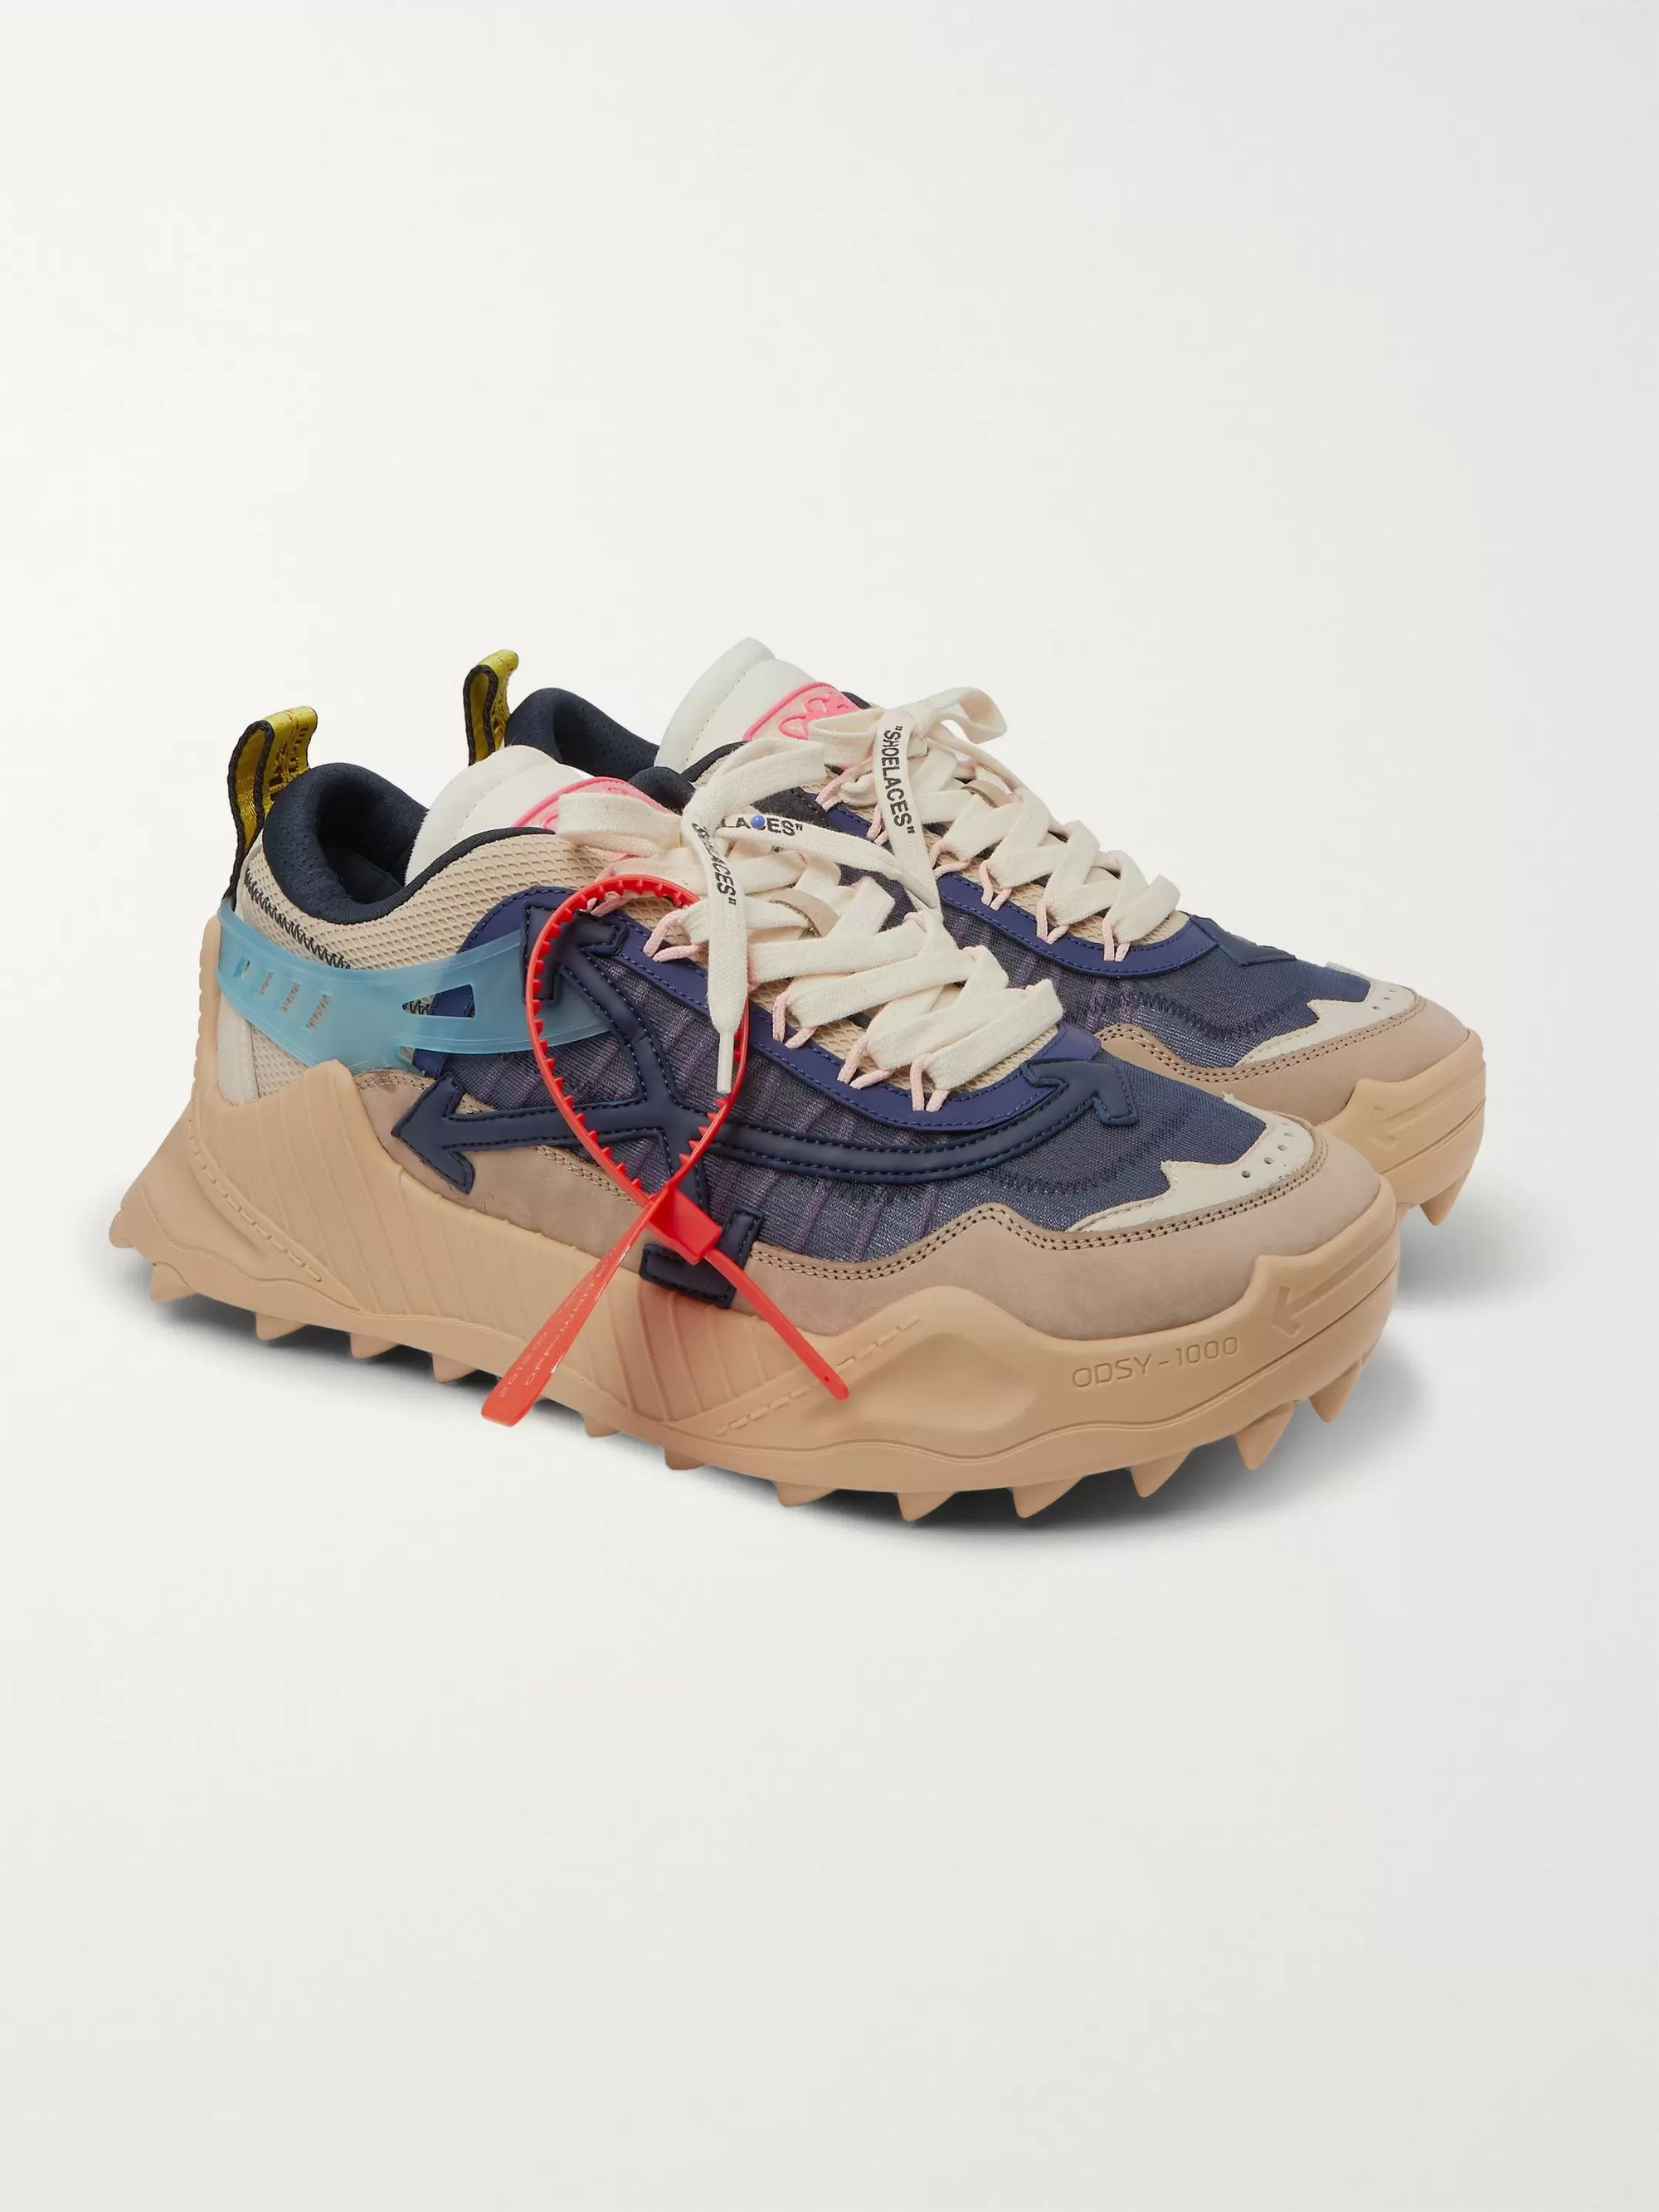 Off-White Odsy-1000 Suede, Mesh and Rubber Sneakers